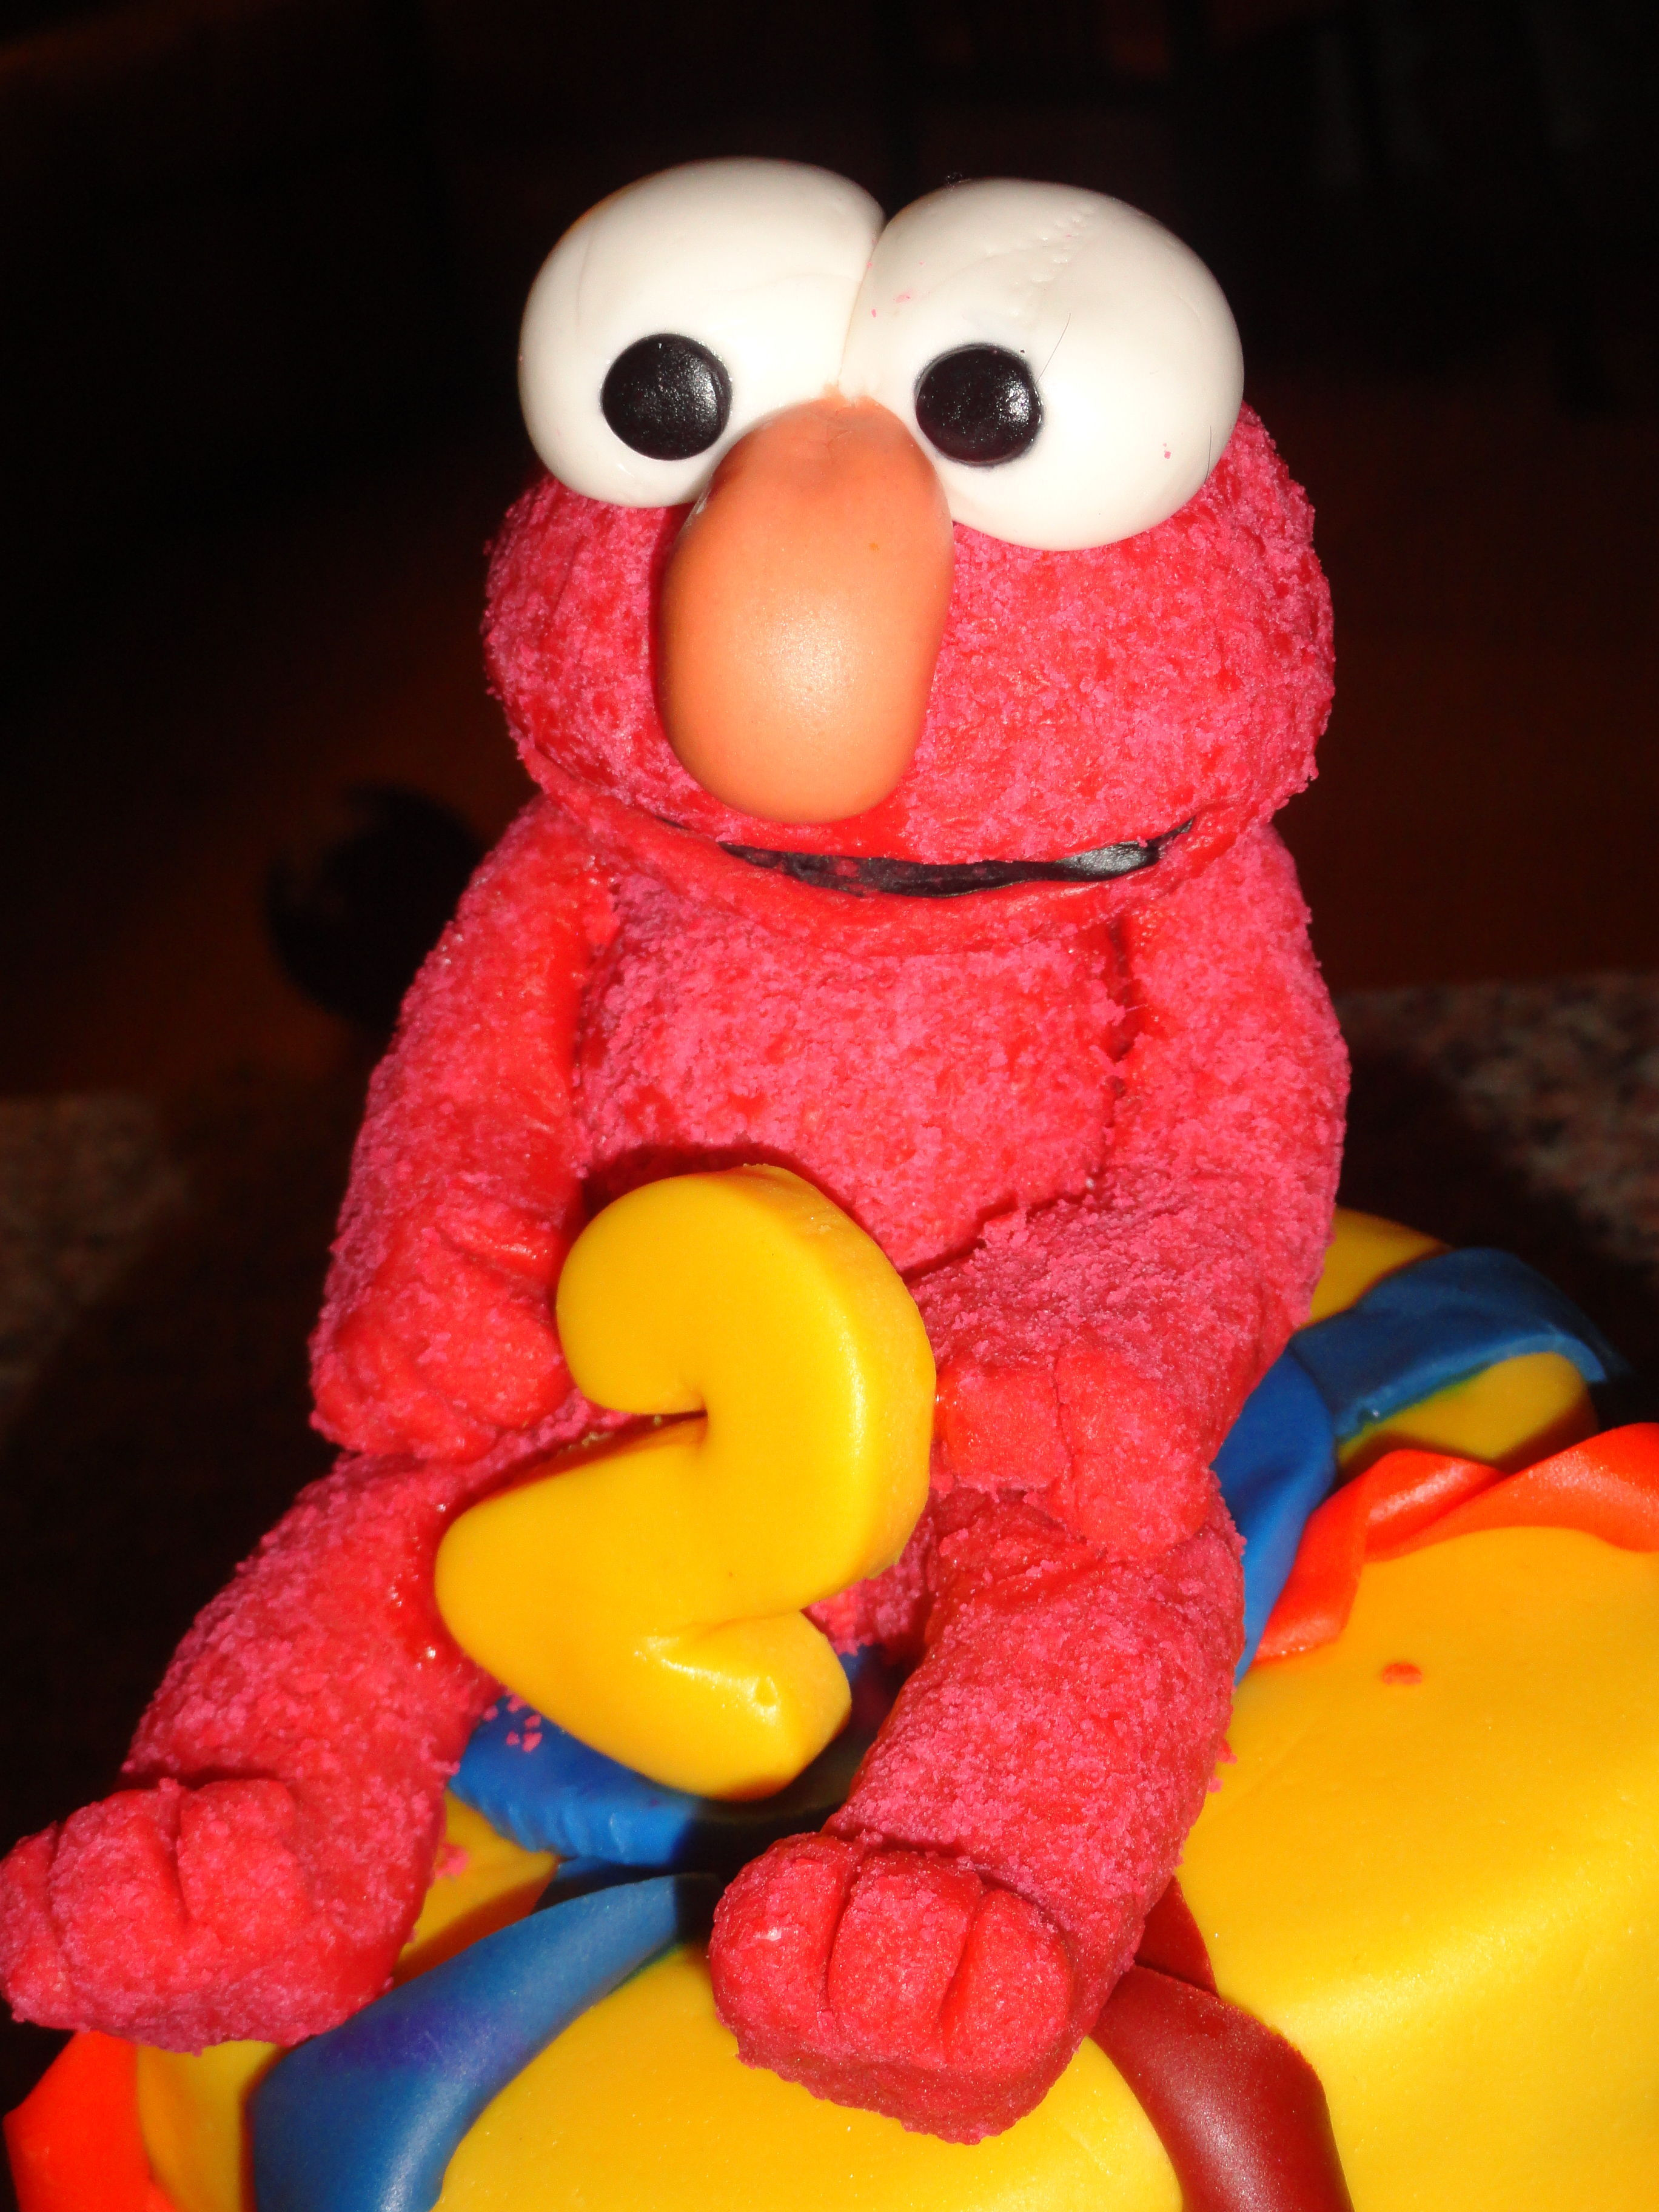 Elmo Topper made from gumpaste